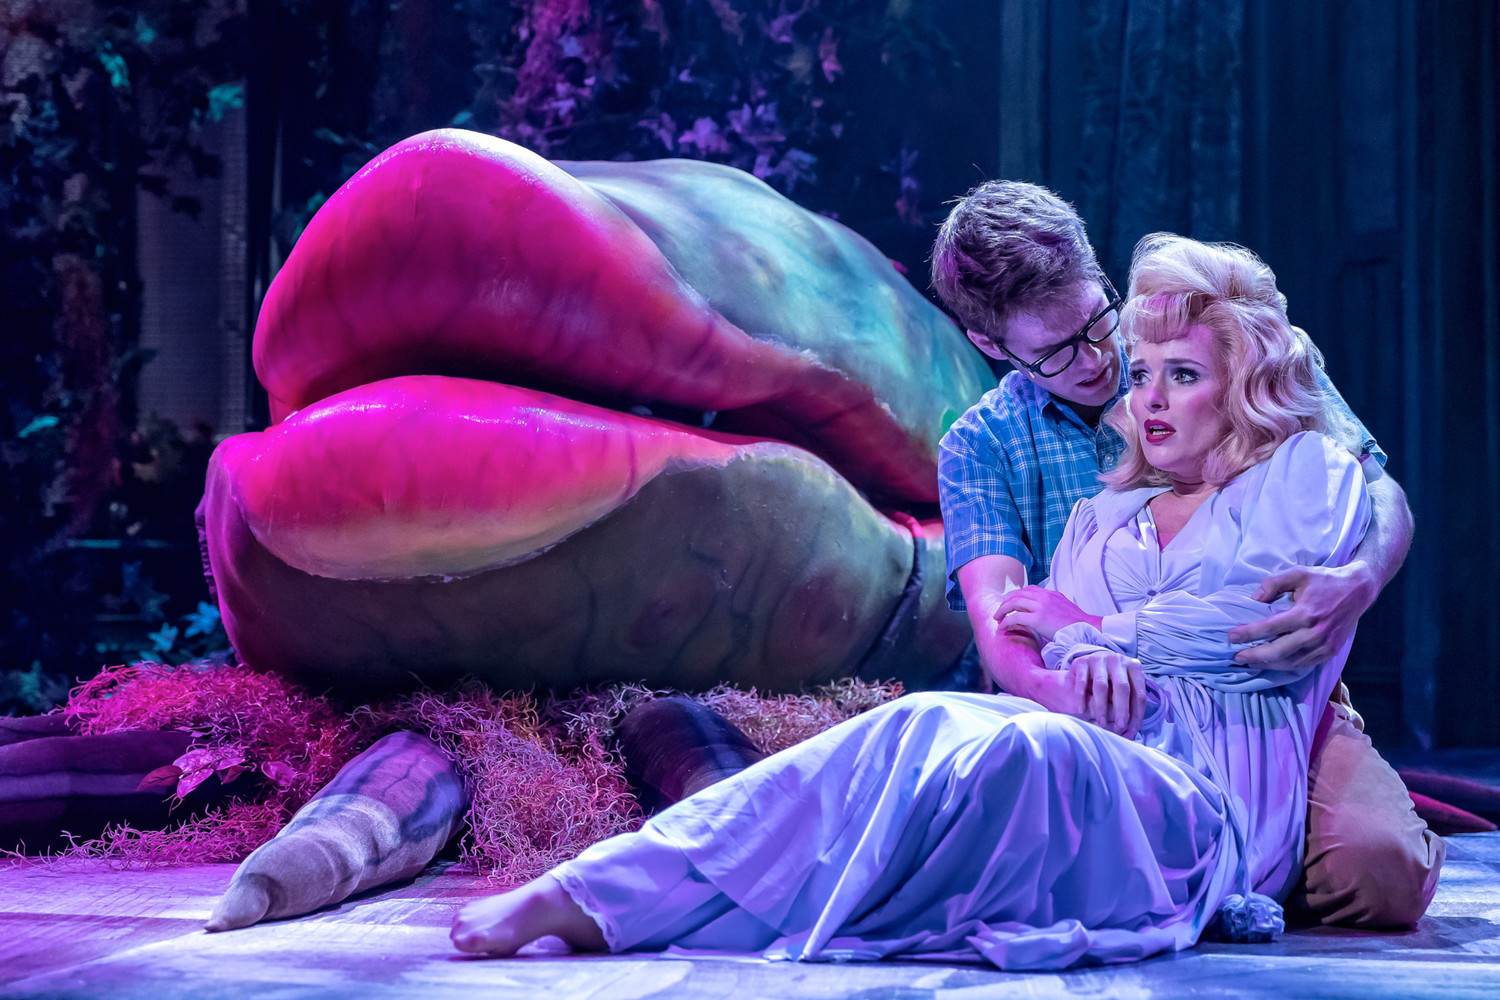 BWW Review: LITTLE SHOP OF HORRORS at Drury Lane Theatre blends humor and heart